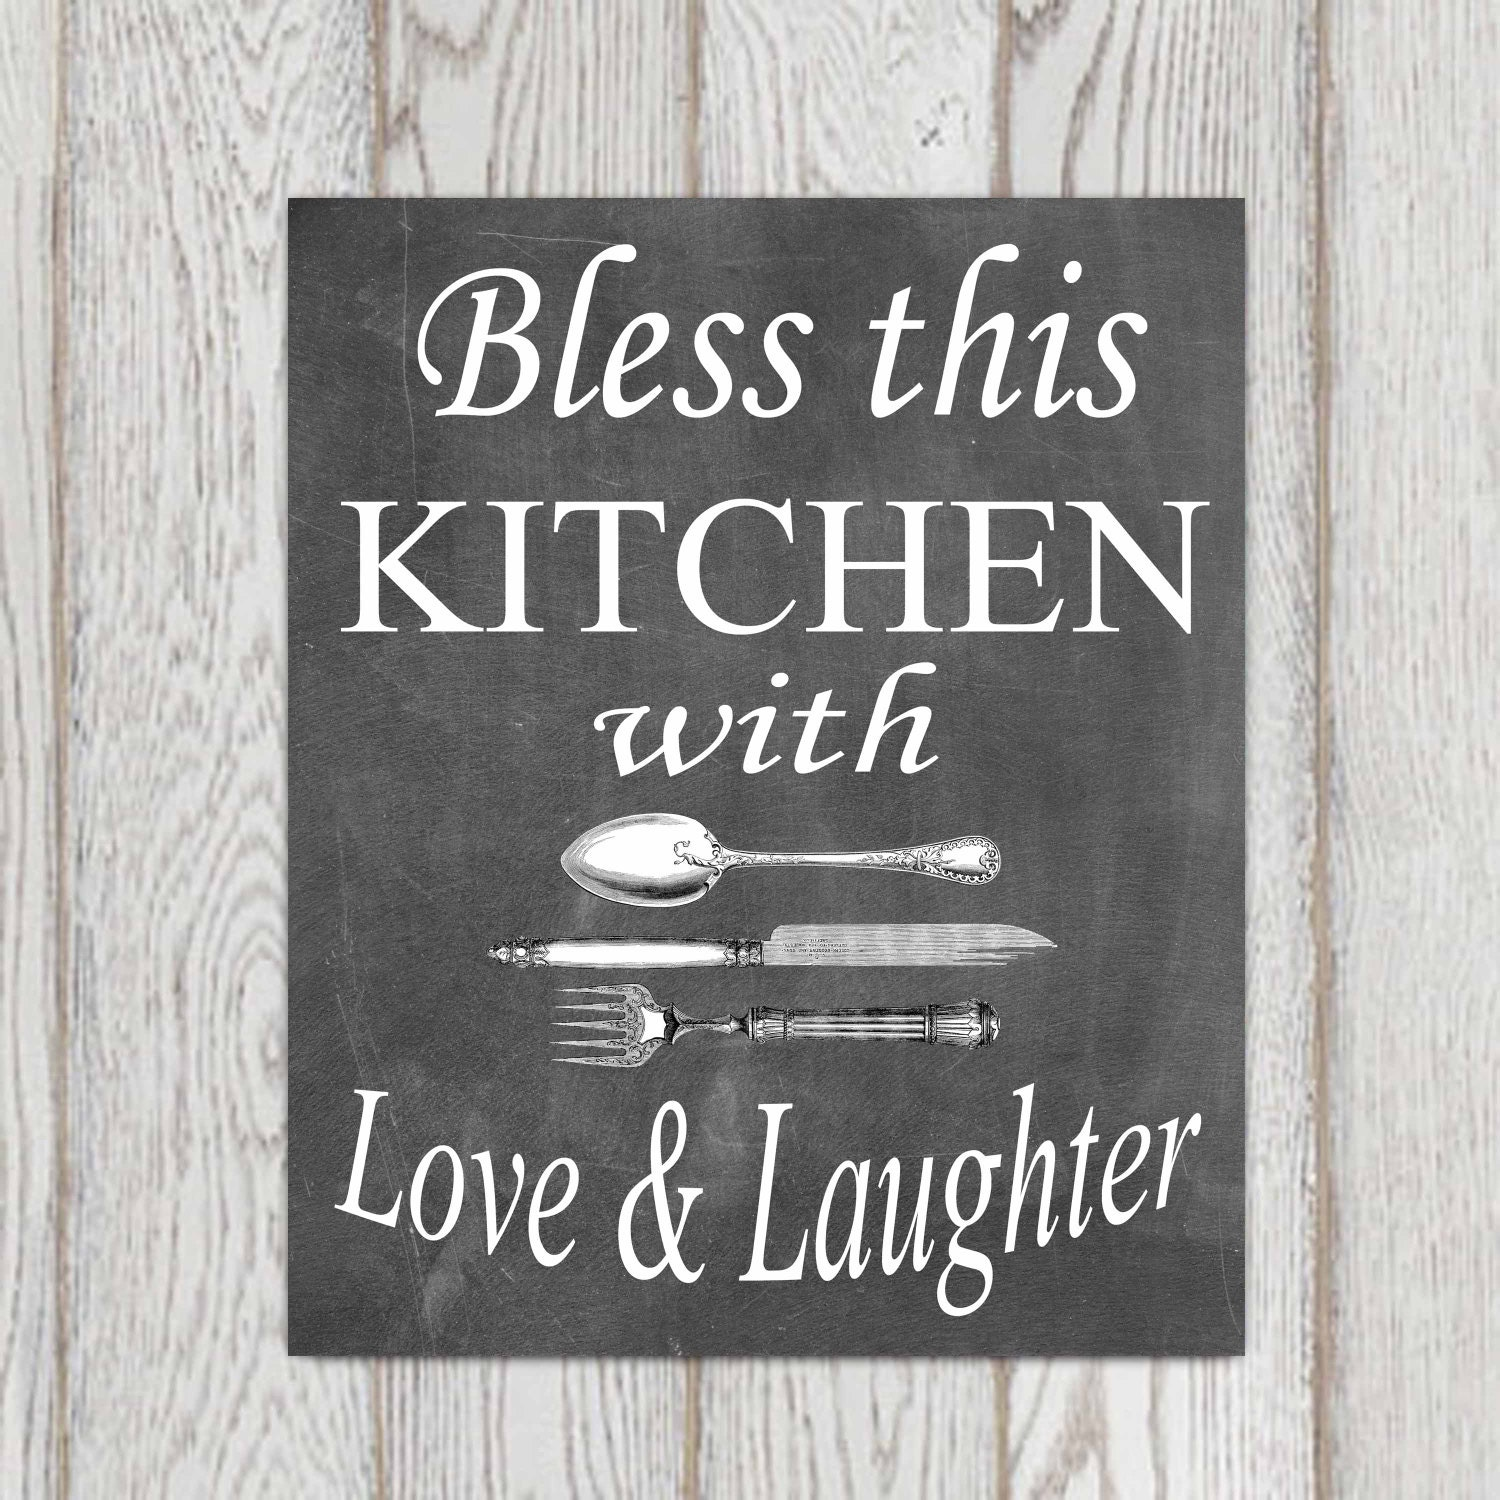 15 Whimsical Kitchen Designs With Chalkboard Wall: Kitchen Decor Chalkboard Kitchen Wall Art Kitchen Ideas